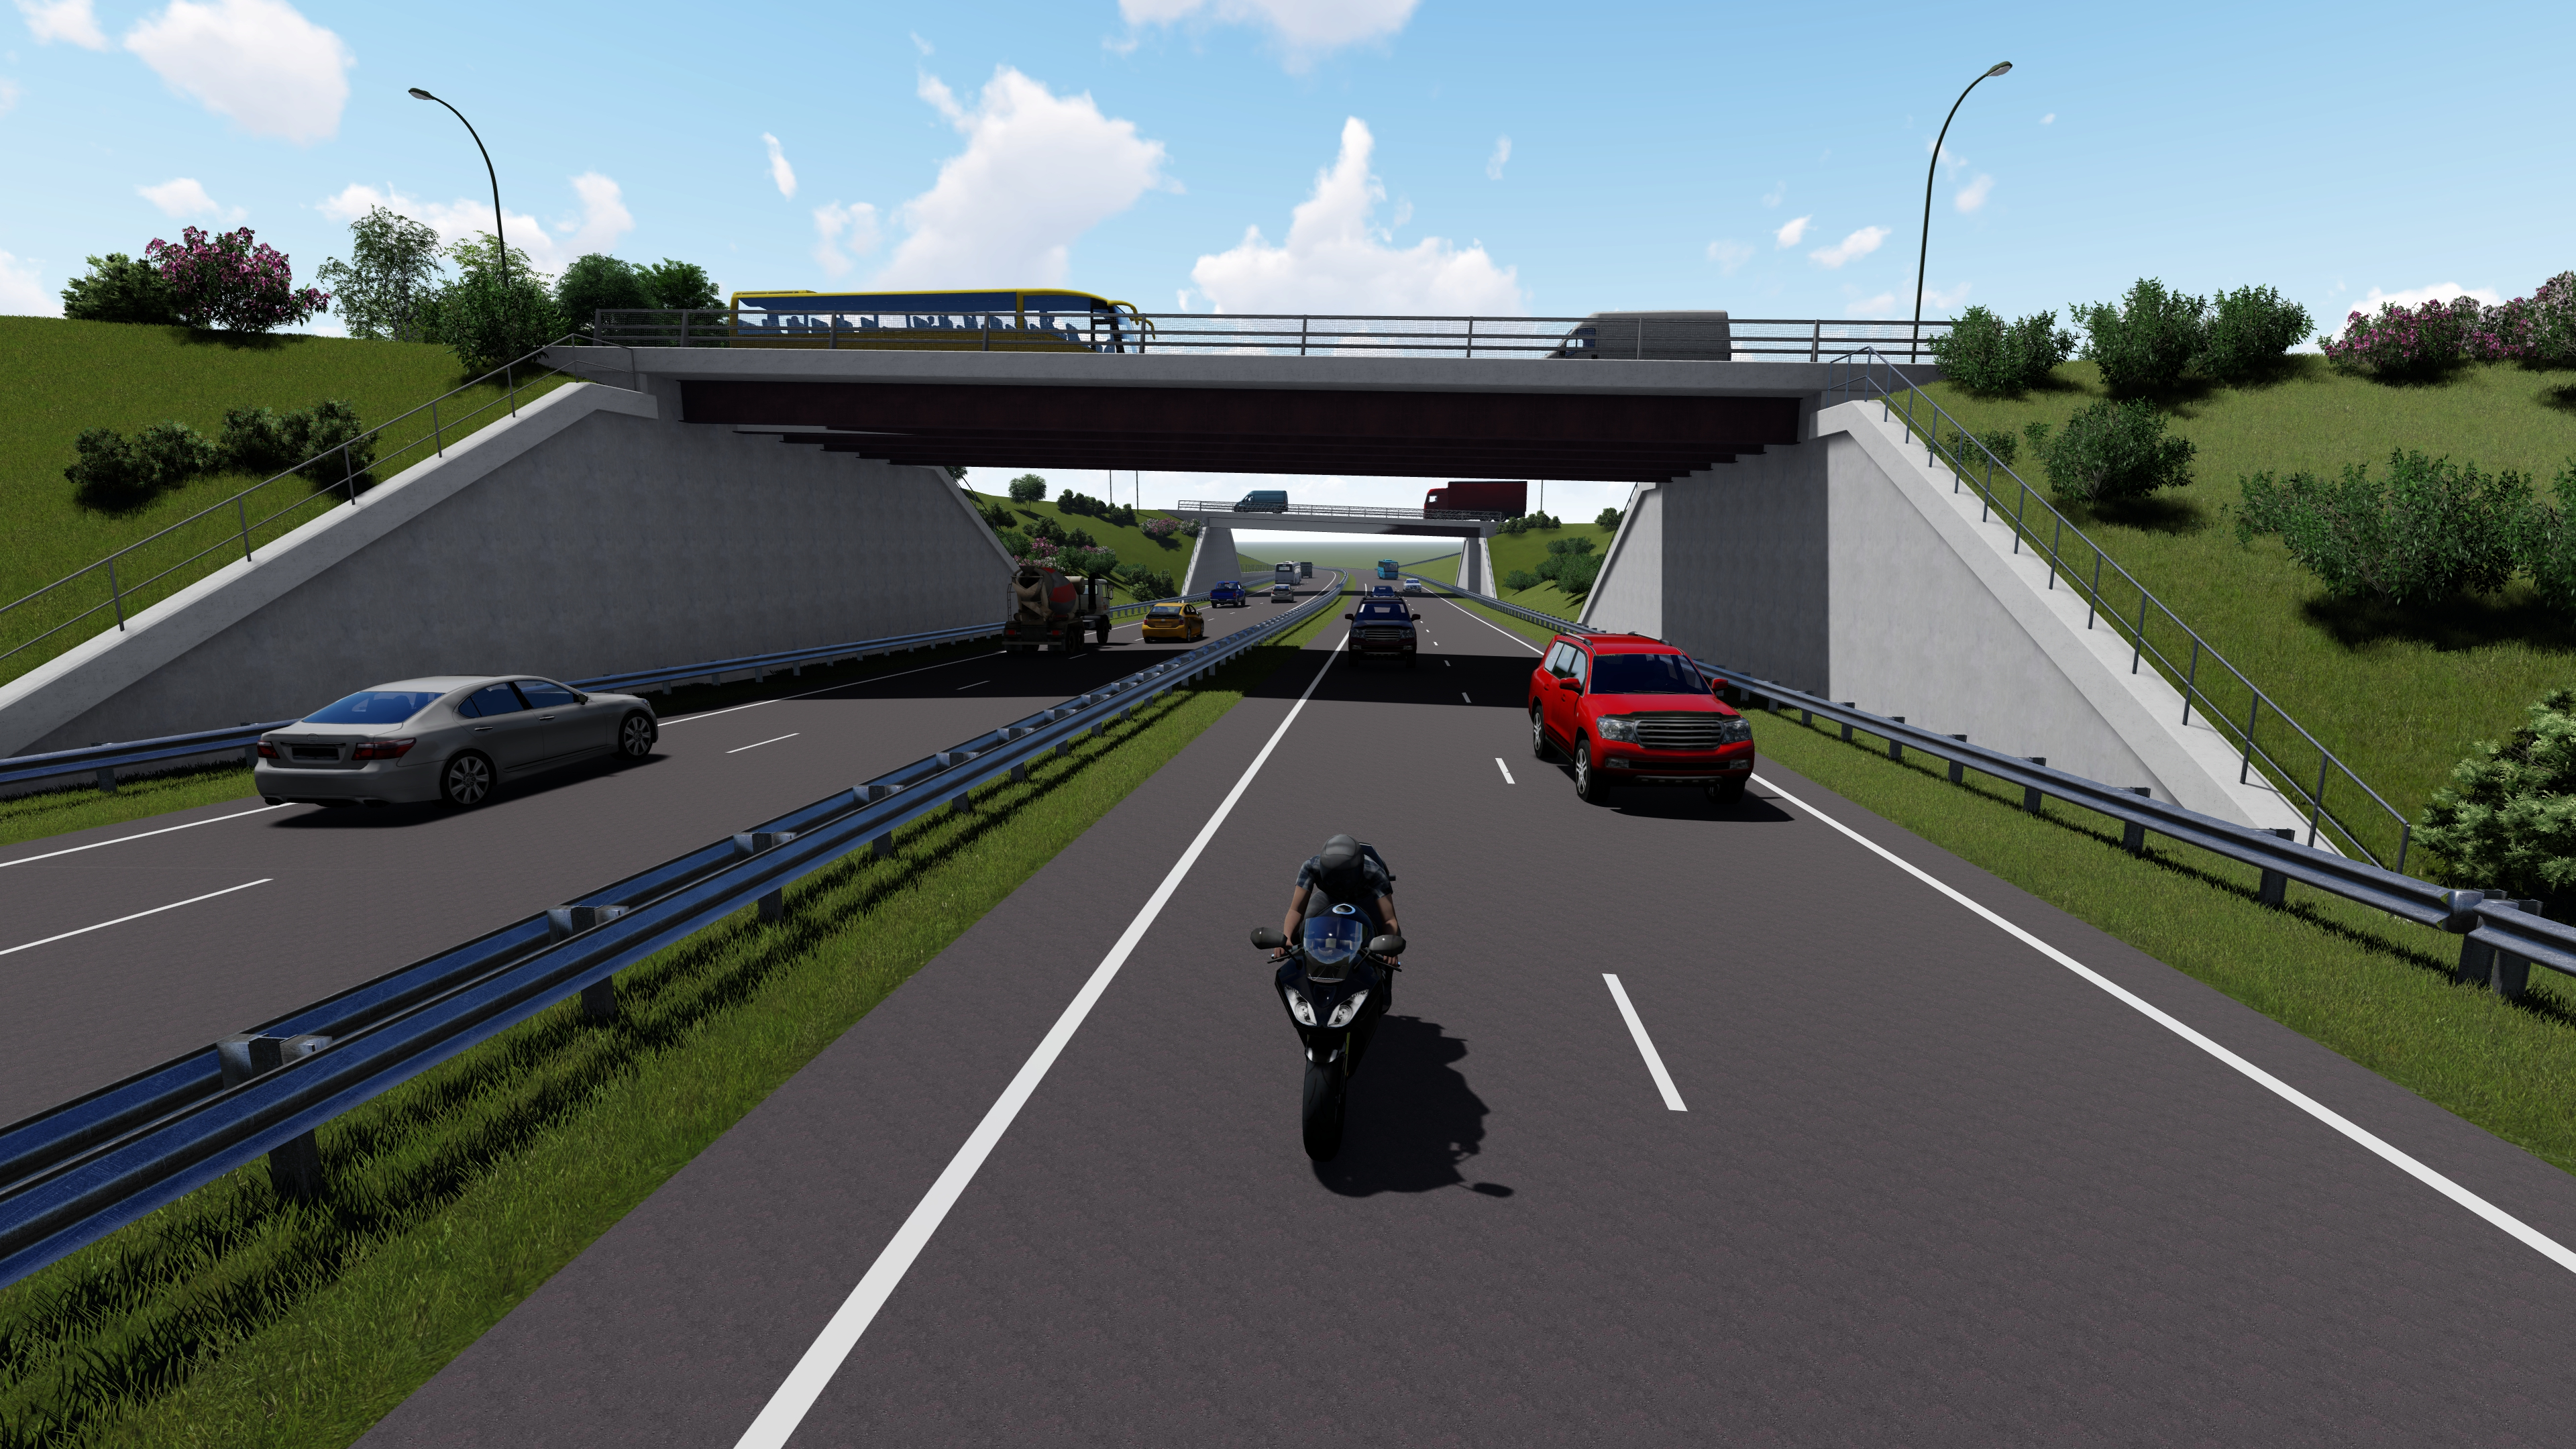 Bridge End junction artist's impression